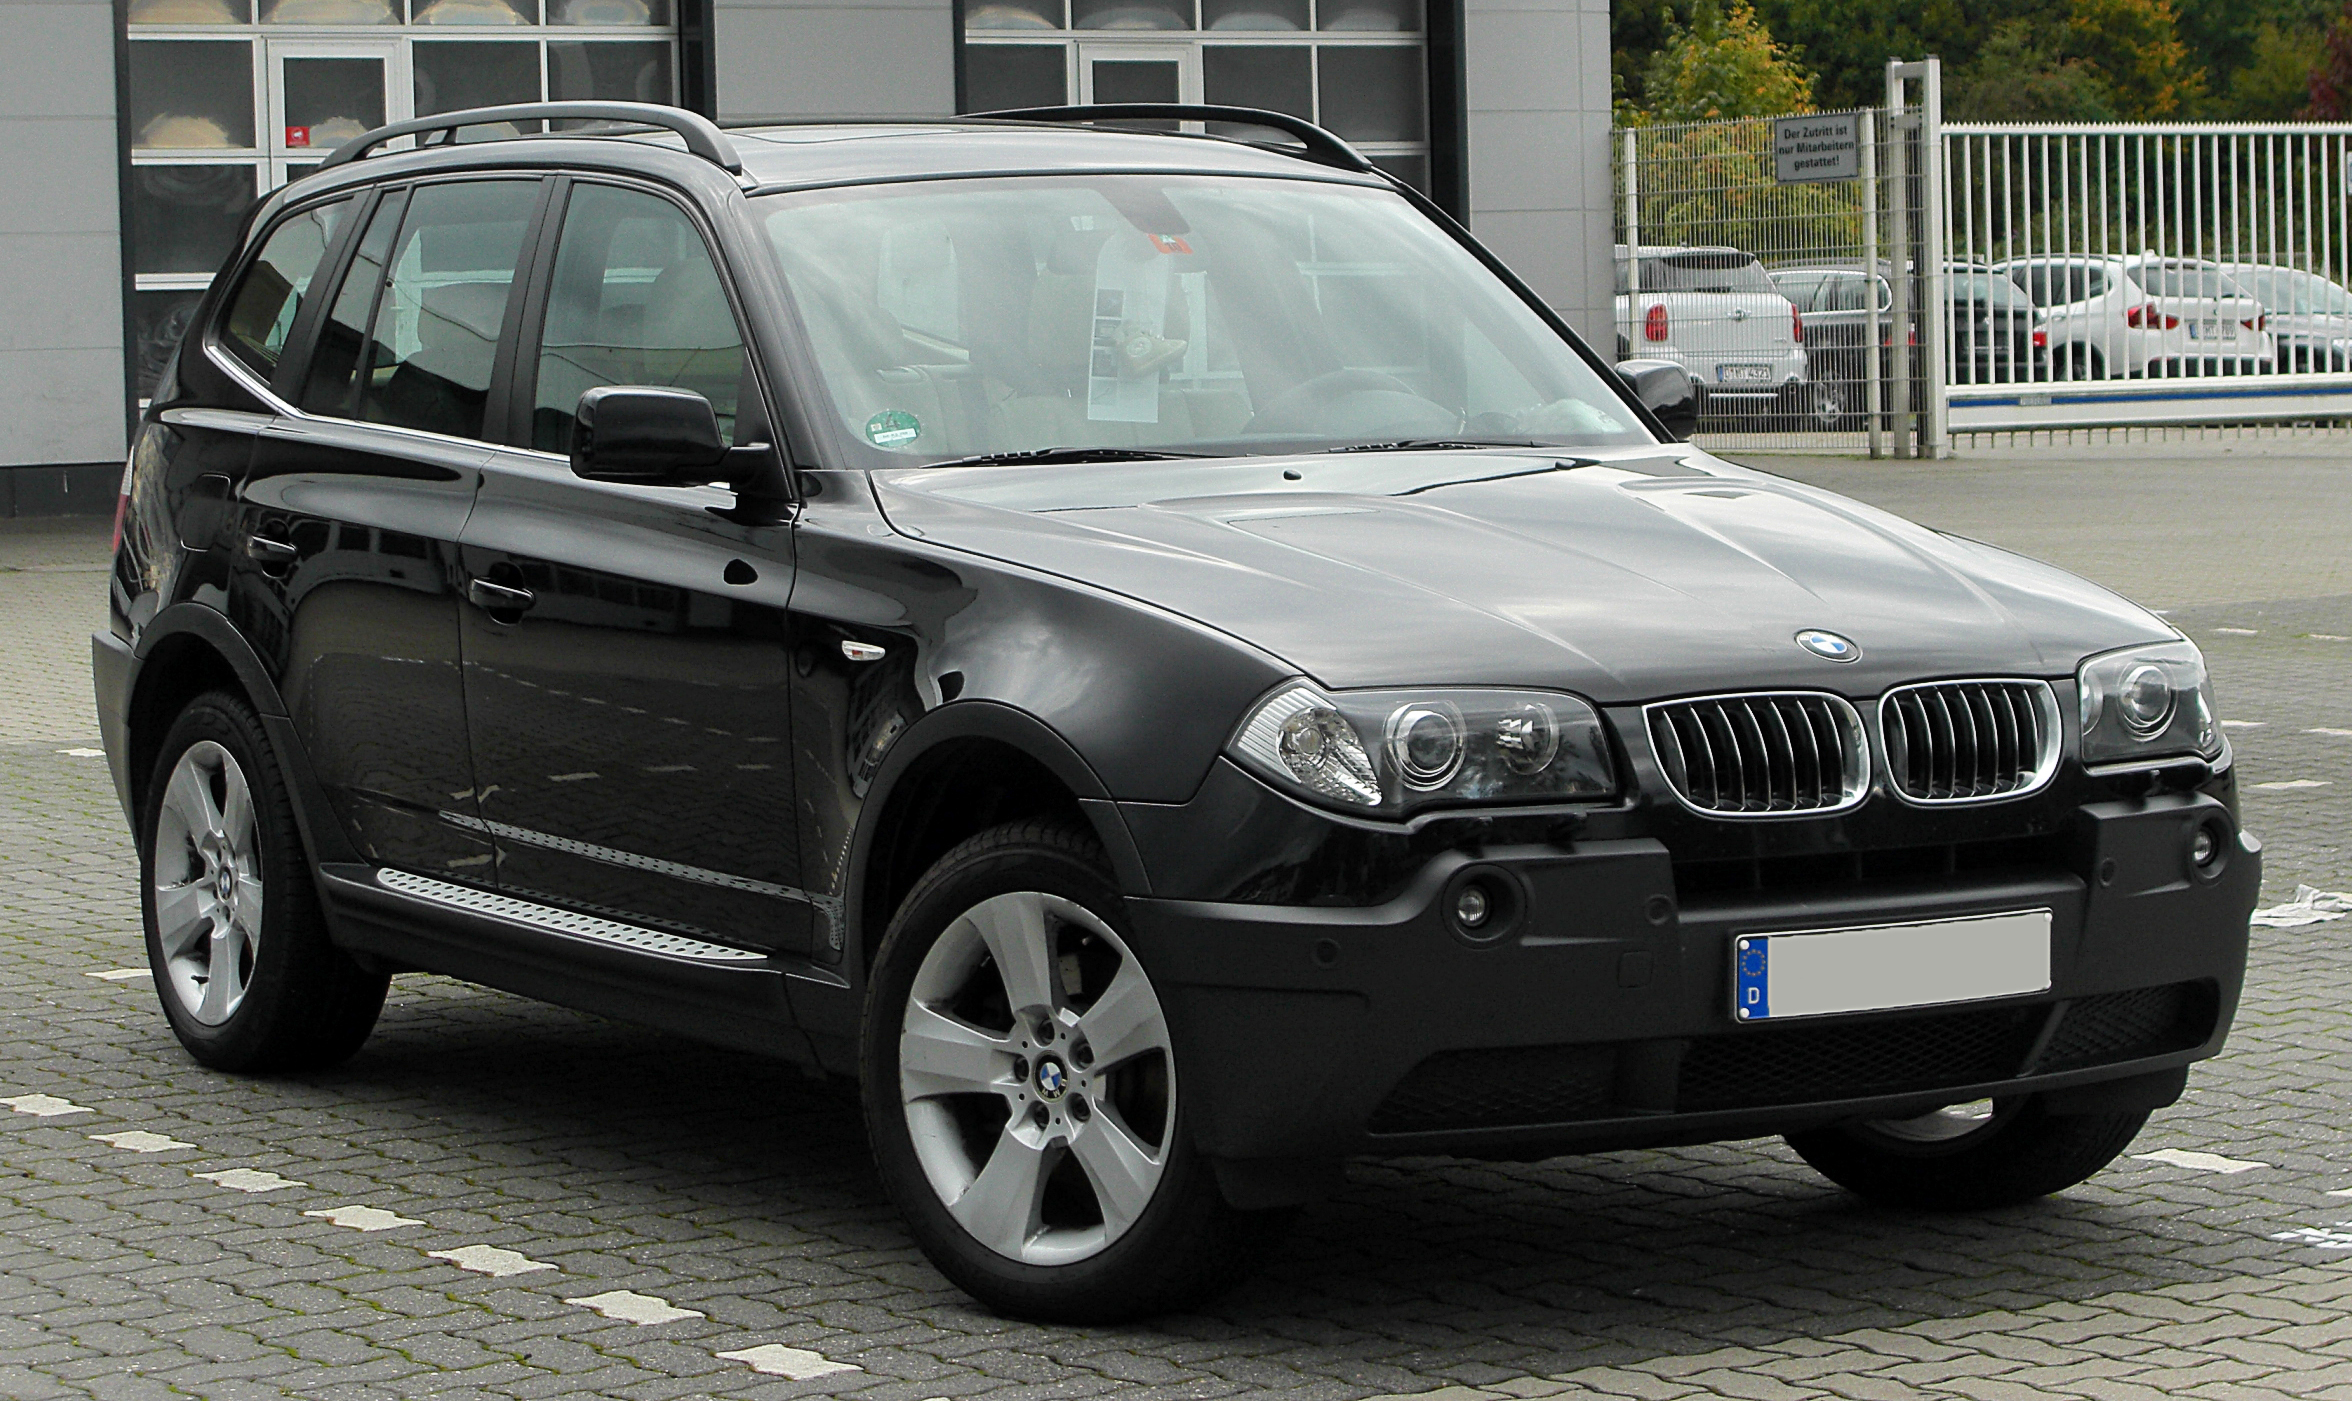 file bmw x3 e83 facelift front wikimedia. Black Bedroom Furniture Sets. Home Design Ideas